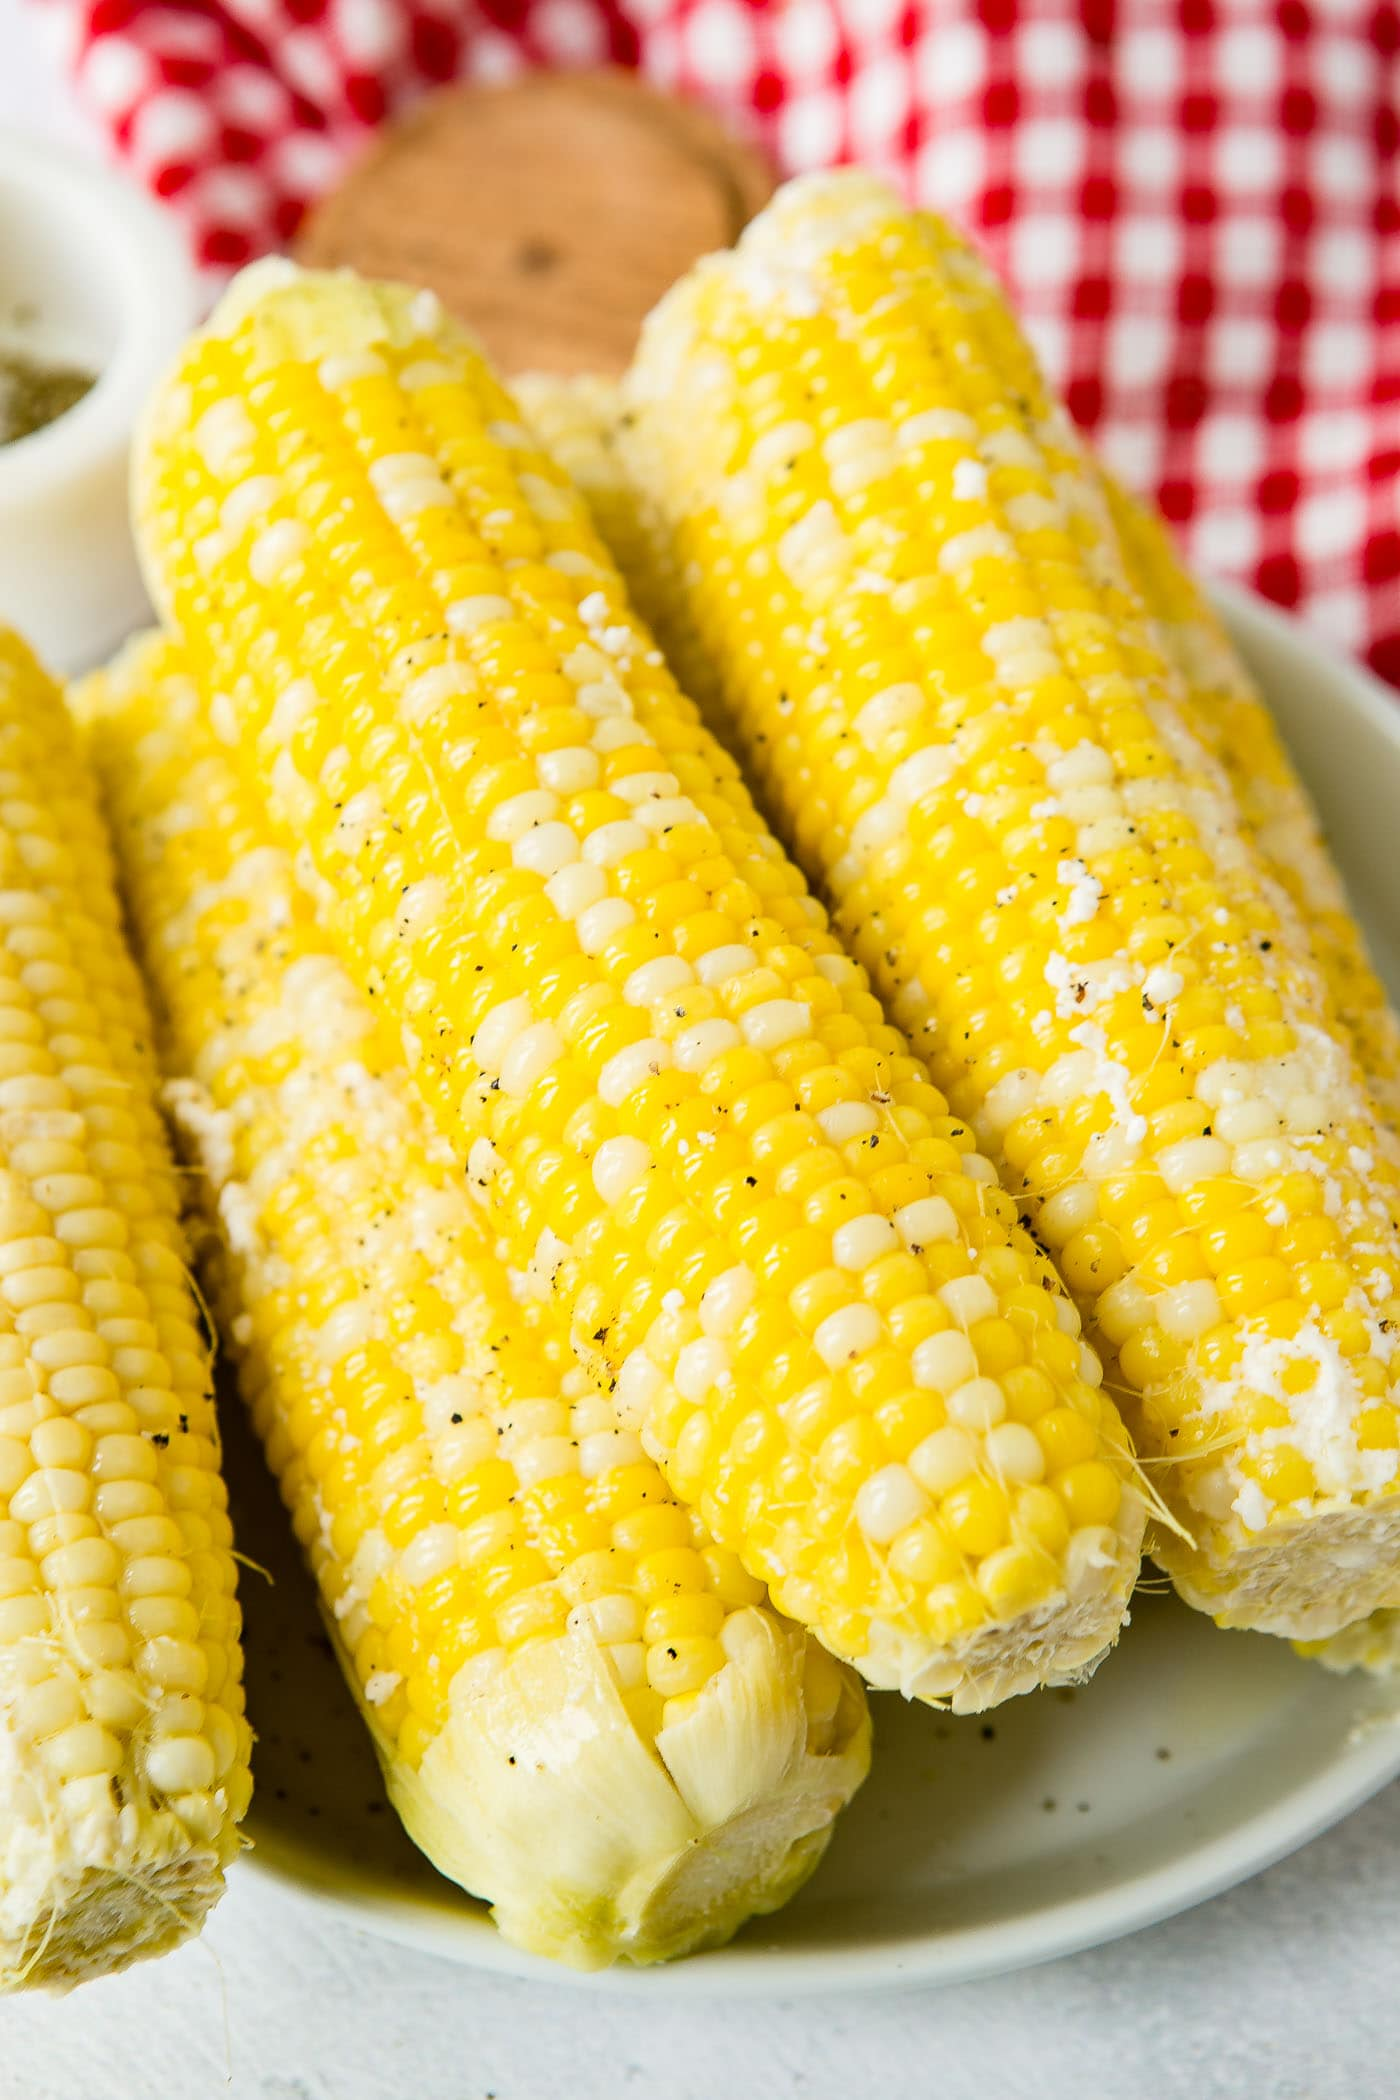 Four ears of cooked corn on the cob. The plate of corn is sitting on a red checked tea towel.